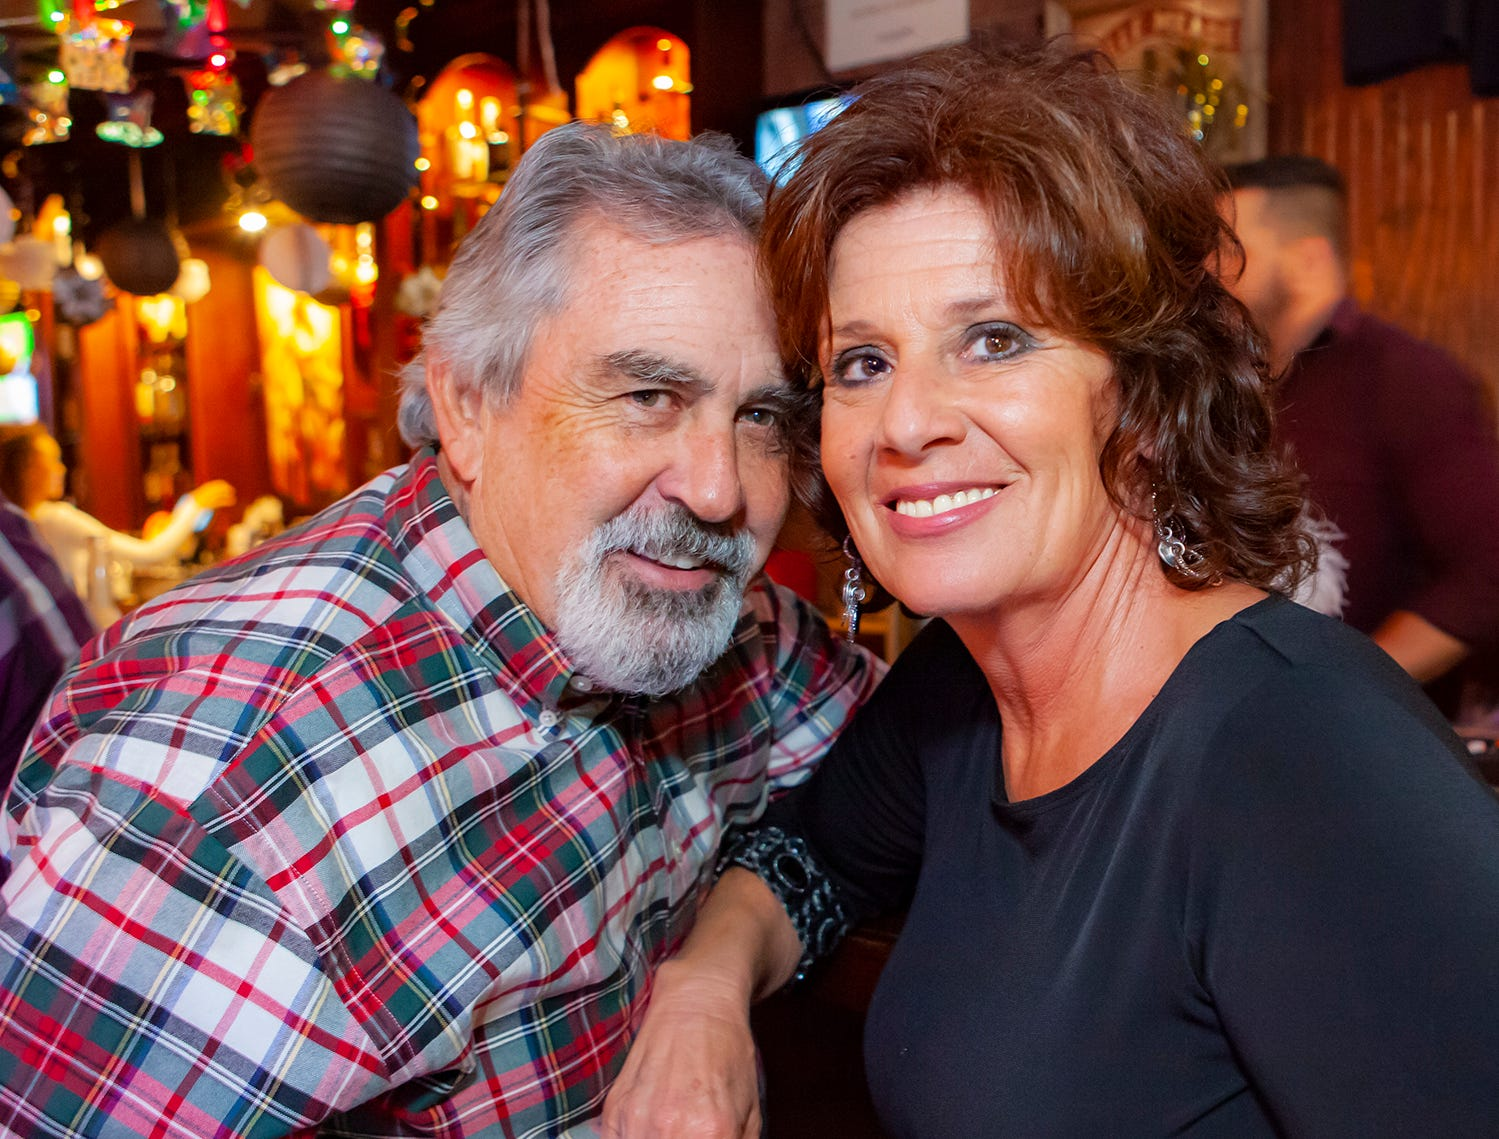 Danny Davis and Joann Holt at the Hank's Honky Tonk New Year's Eve Party in Murfreesboro.